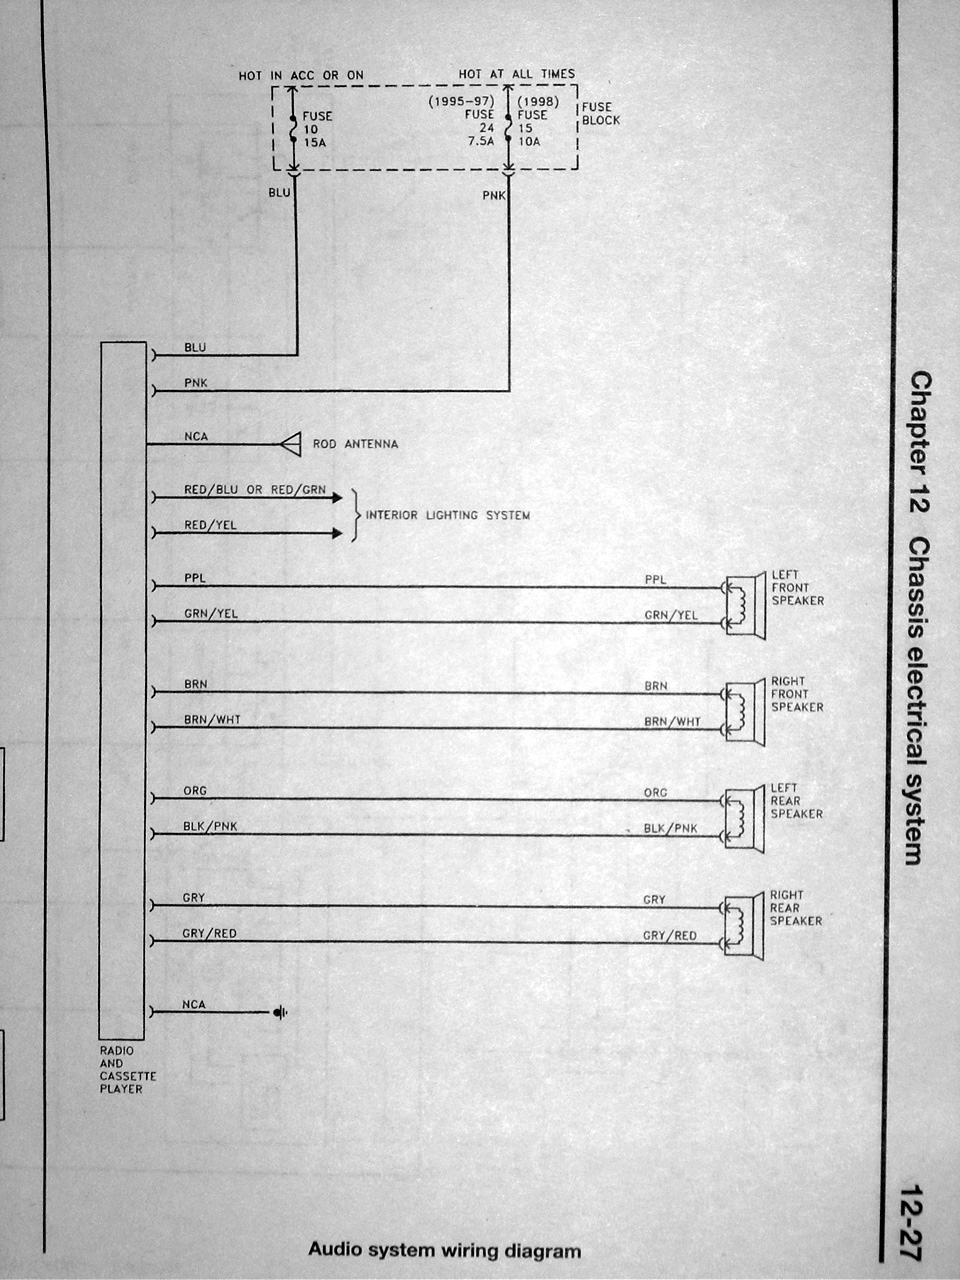 DSC01849 wiring diagram thread *useful info* nissan forum 2001 nissan sentra stereo wiring diagram at n-0.co